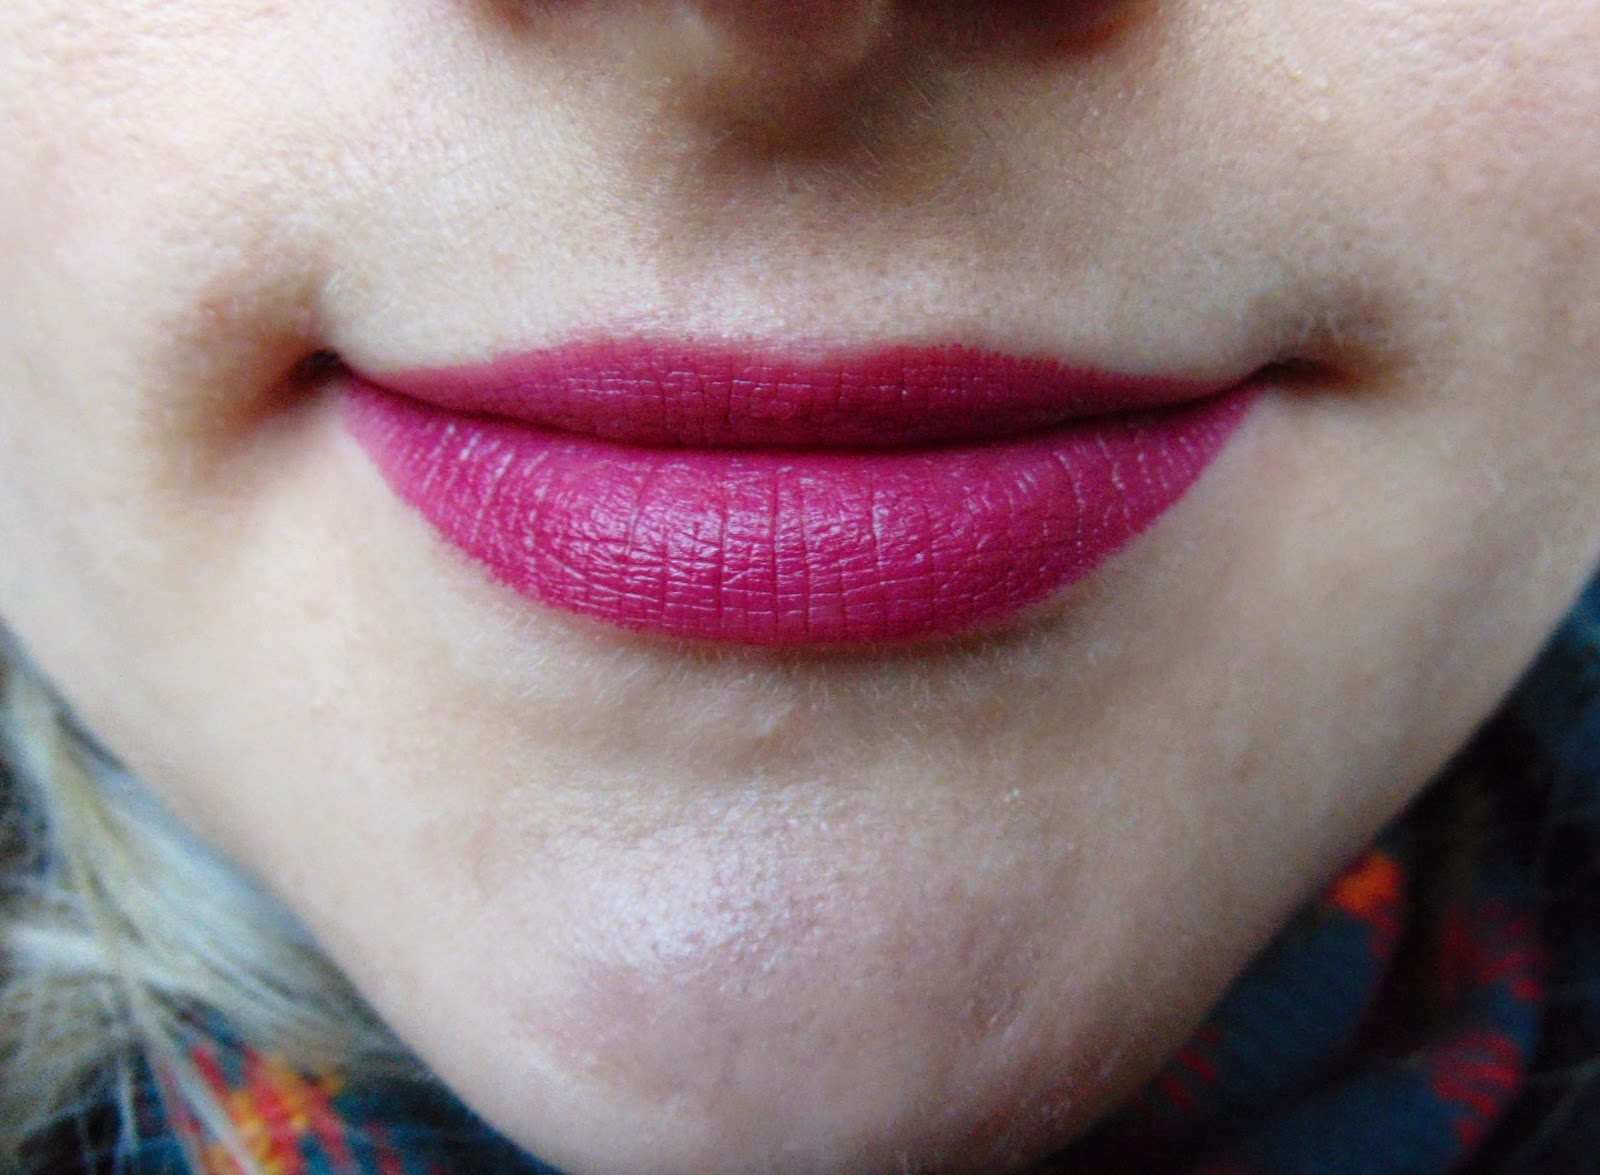 valentines picks for irresistable lips Rimmel Lasting finish by kate lipstick in shade 30